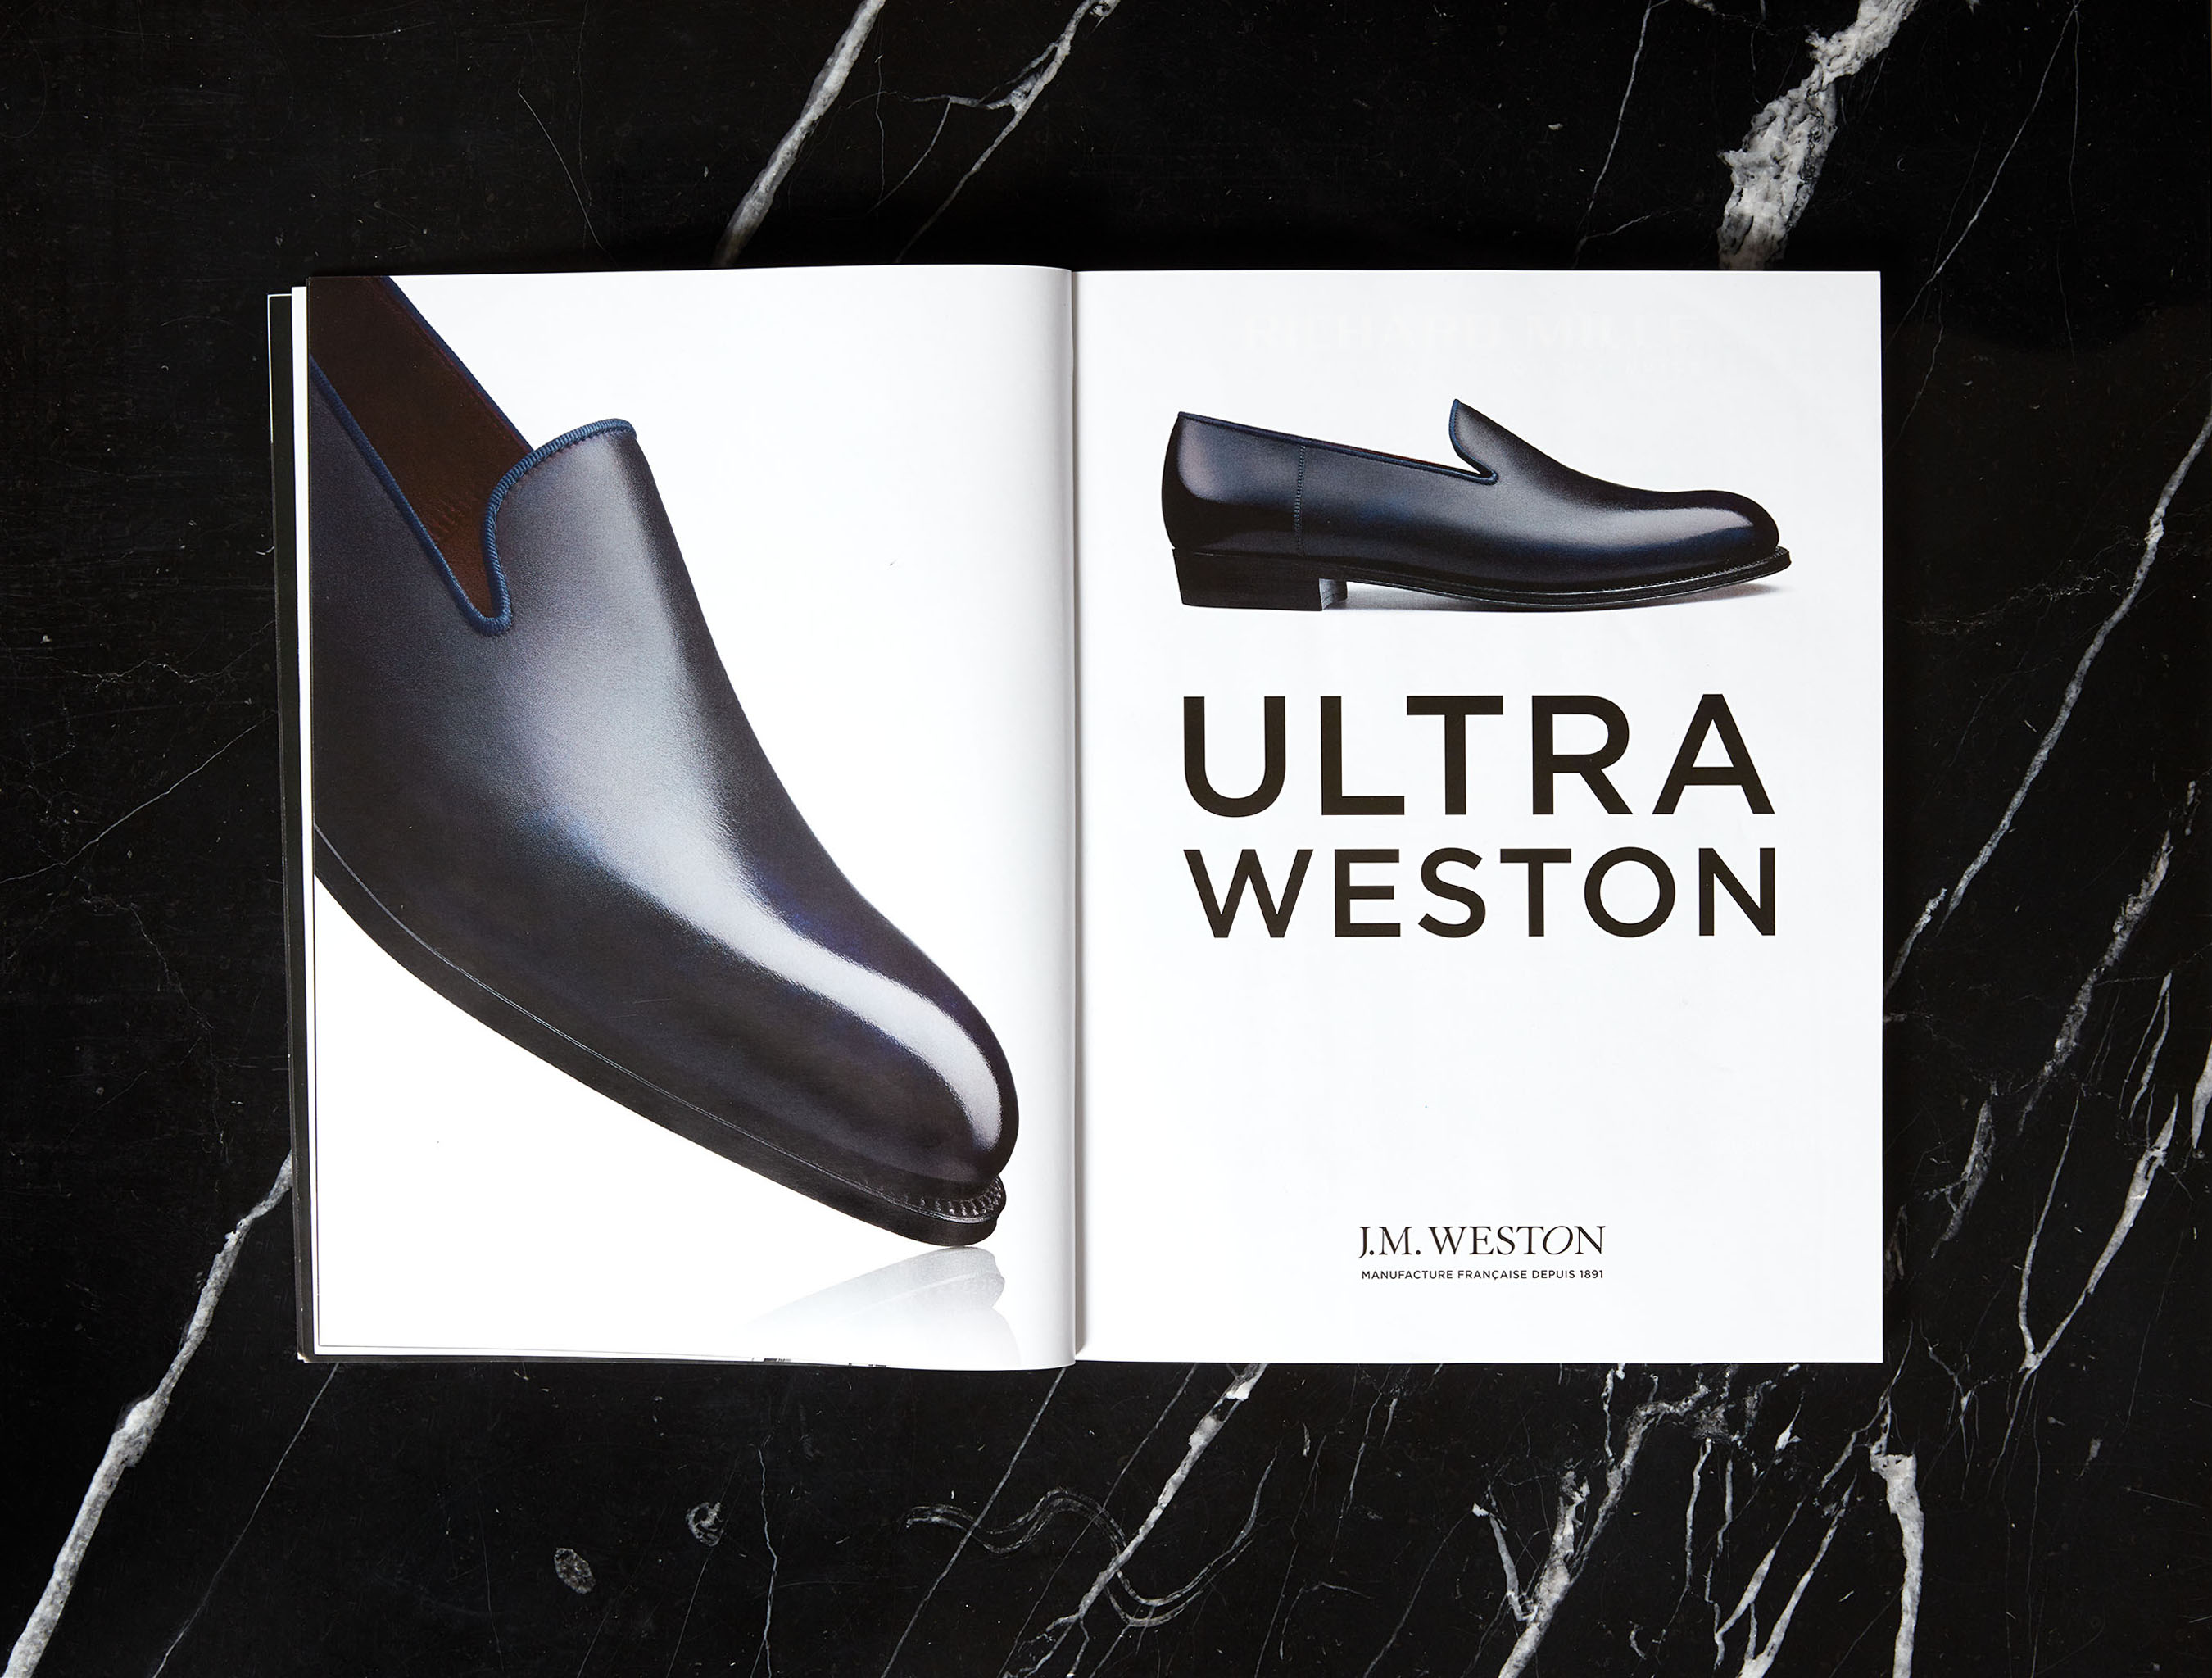 J.M. WESTON ULTRA. Mocassin Manufacture française Made in France Soulier Luxe Savoir-Faire Campagne